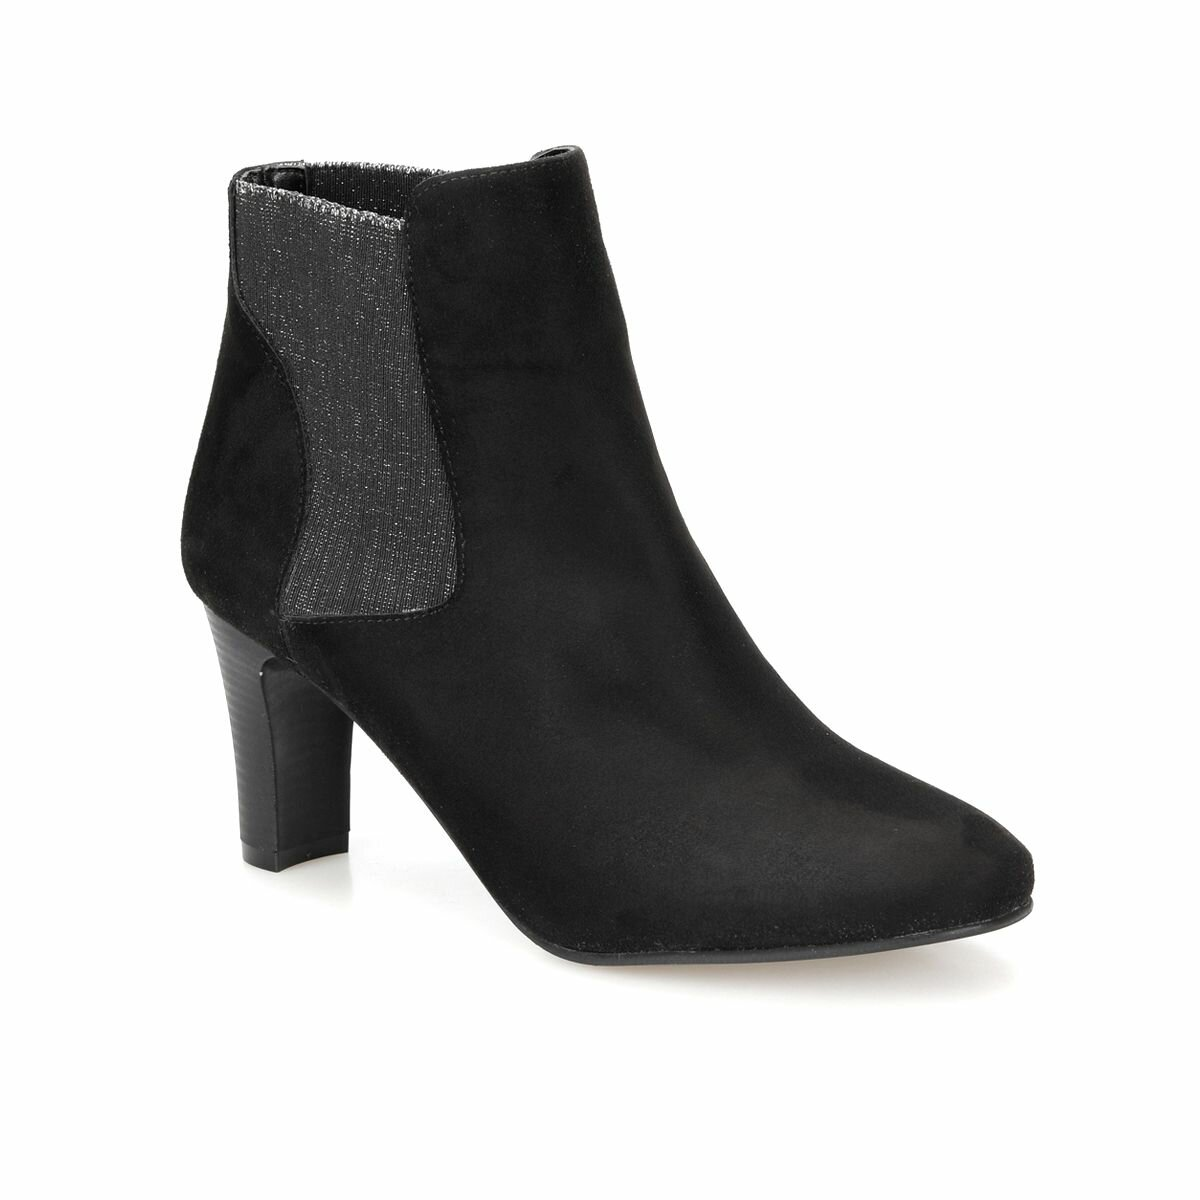 FLO DW18092 Black Female High-Heeled Boots Miss F